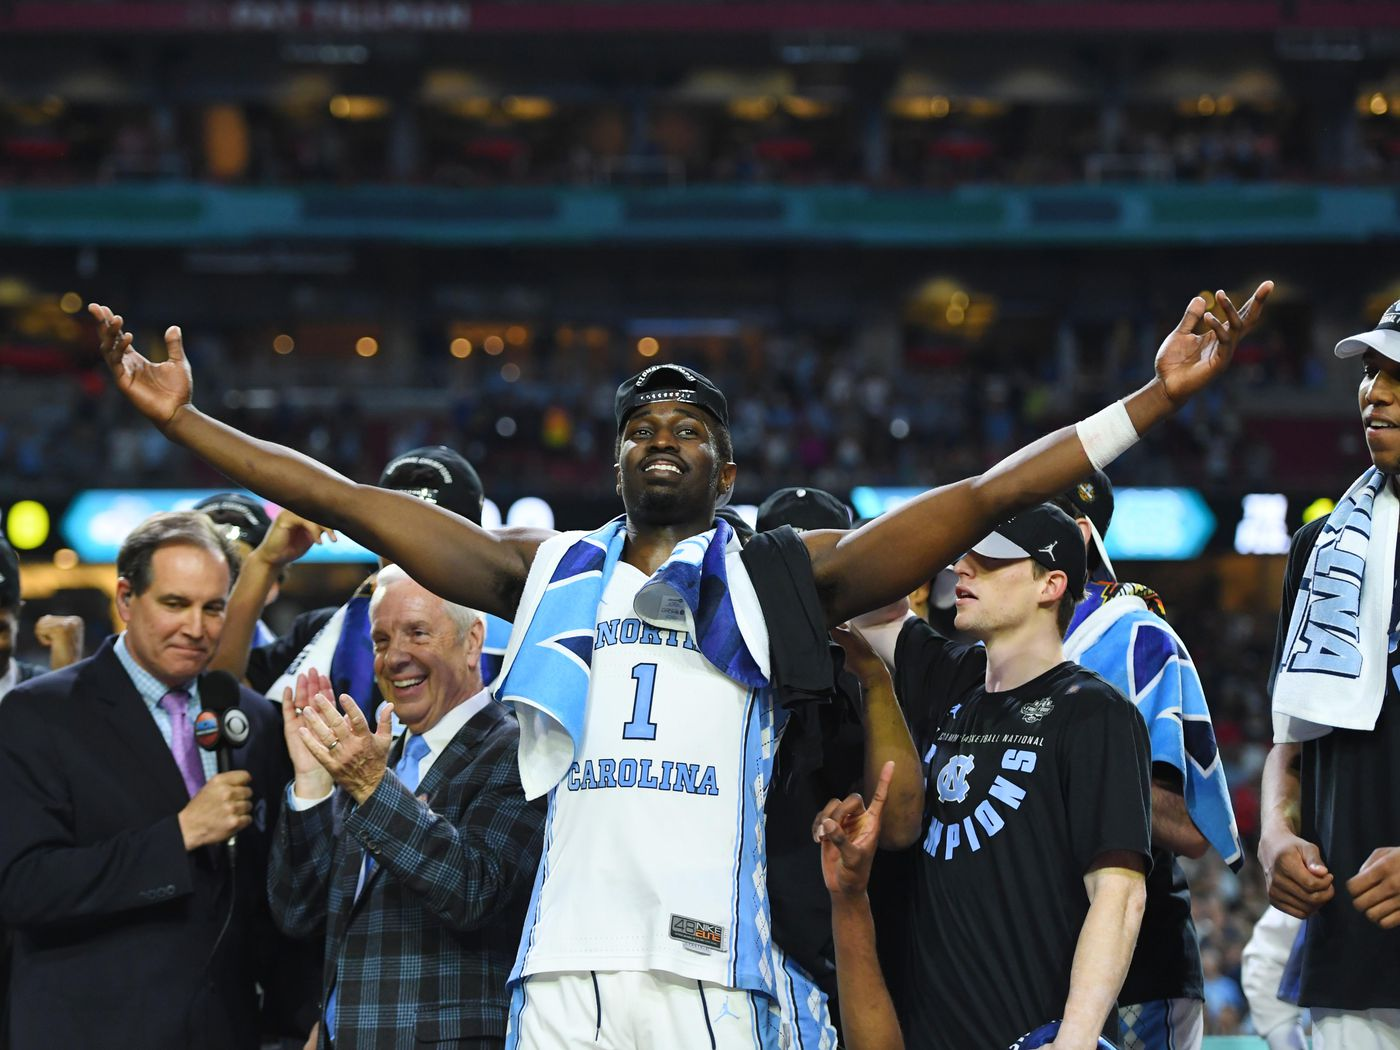 UNC 2017 basketball players as Summer 2017's biggest hit songs ...